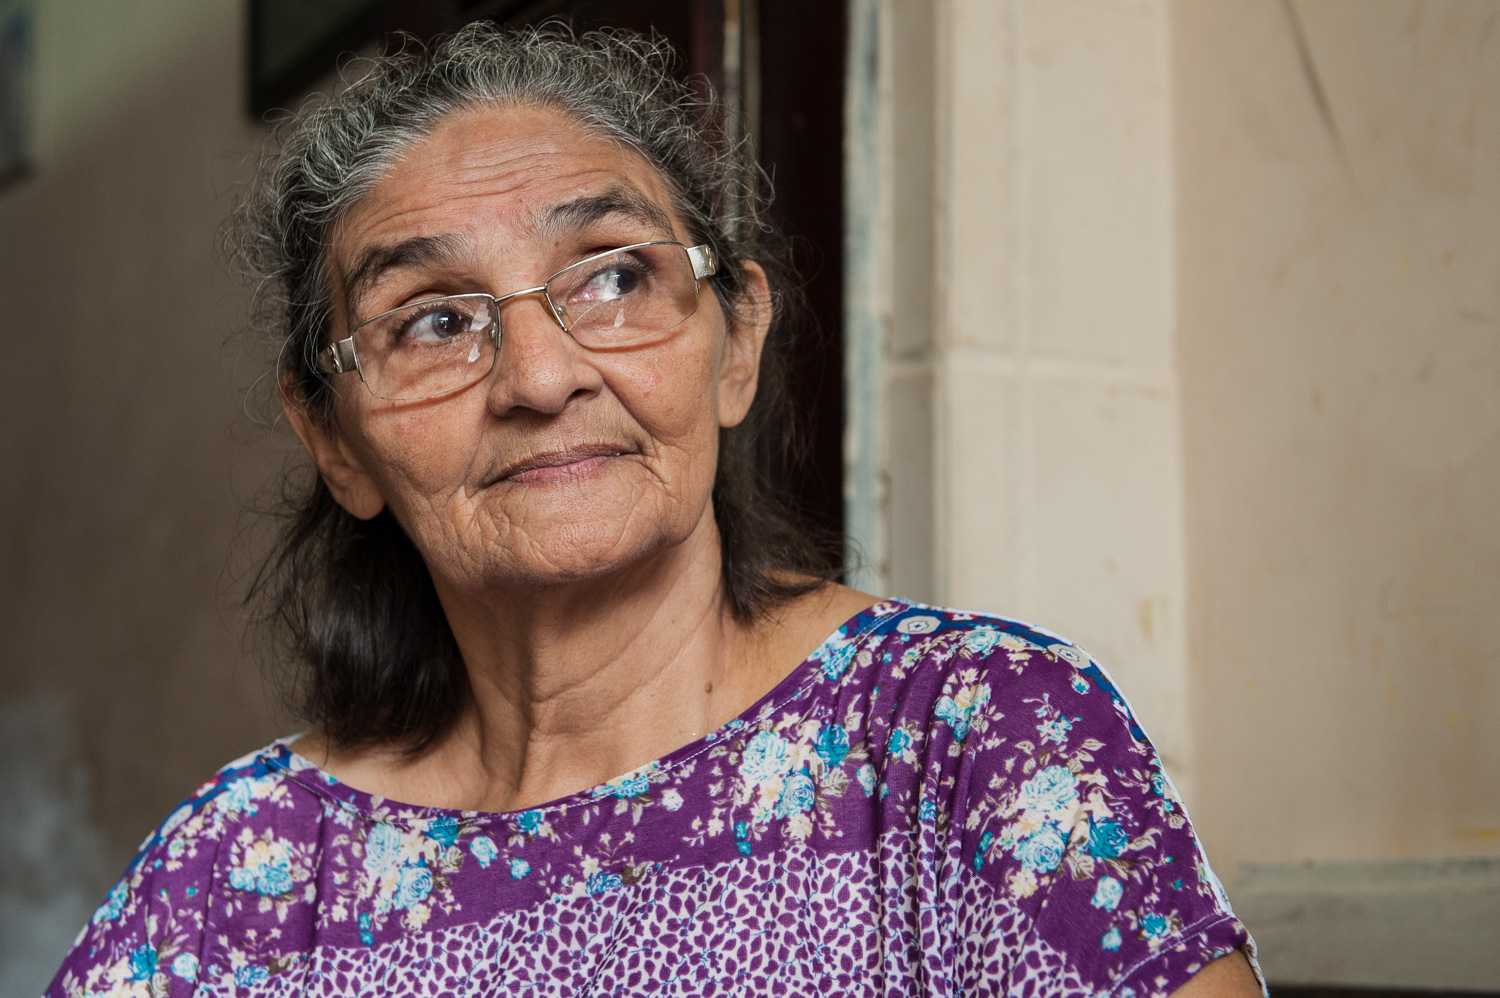 Yope Maria, a resident of the favela Poco da Draga since 1961, has raised her 10 children, 14 grandchildren, and now a great grandchild there. Now, she and her neighbors fear they will be evicted to create a parking lot for a new acquarium. She is confident that she is a legal owner but has little hope of compensation or resettlement.